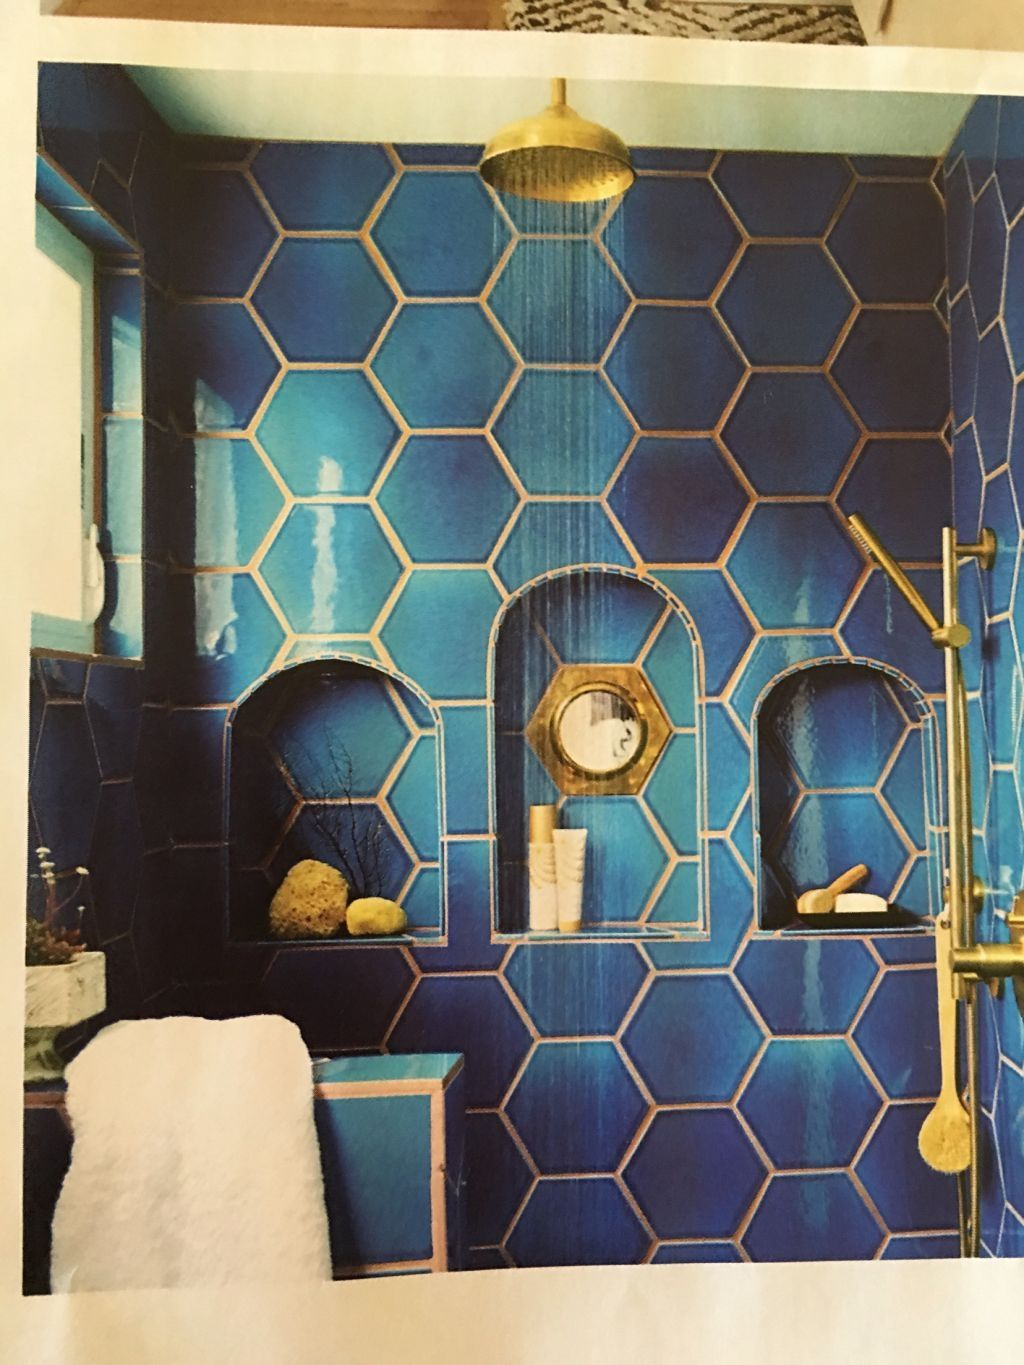 Shower with window ideas   beautiful tiles around shower window  pinterest  shower window